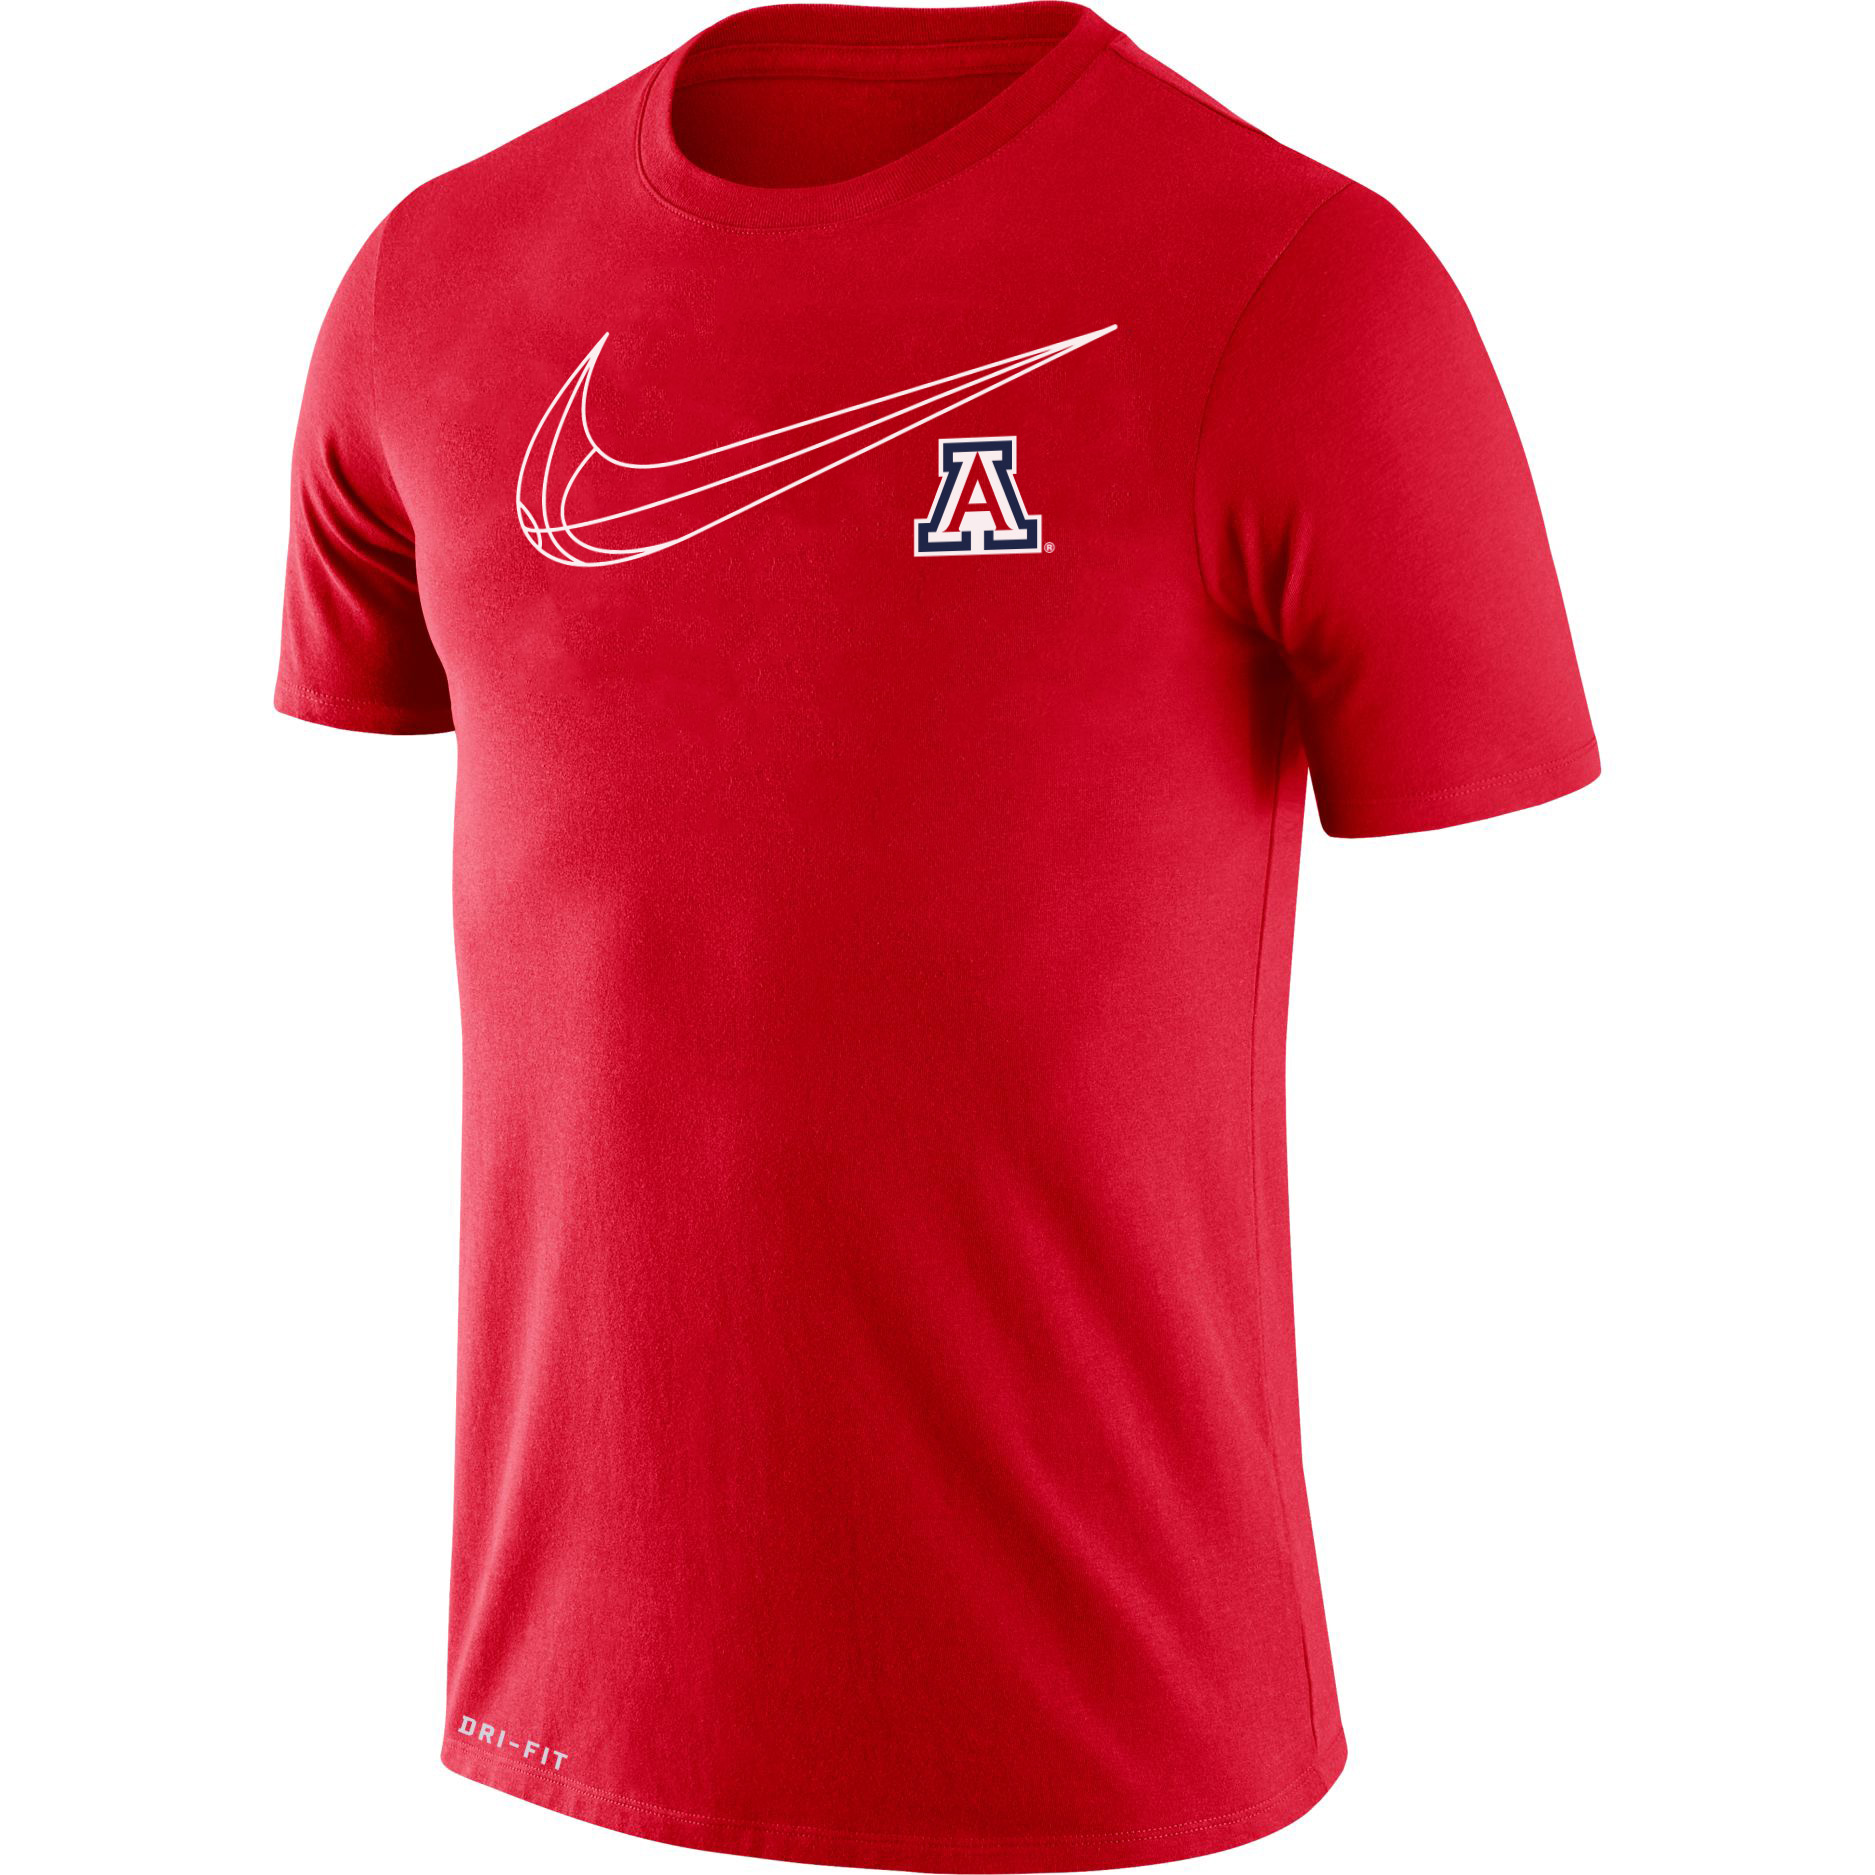 Image For Nike: Arizona Basketball Men's Cotton Dri-Fit Tee - Red